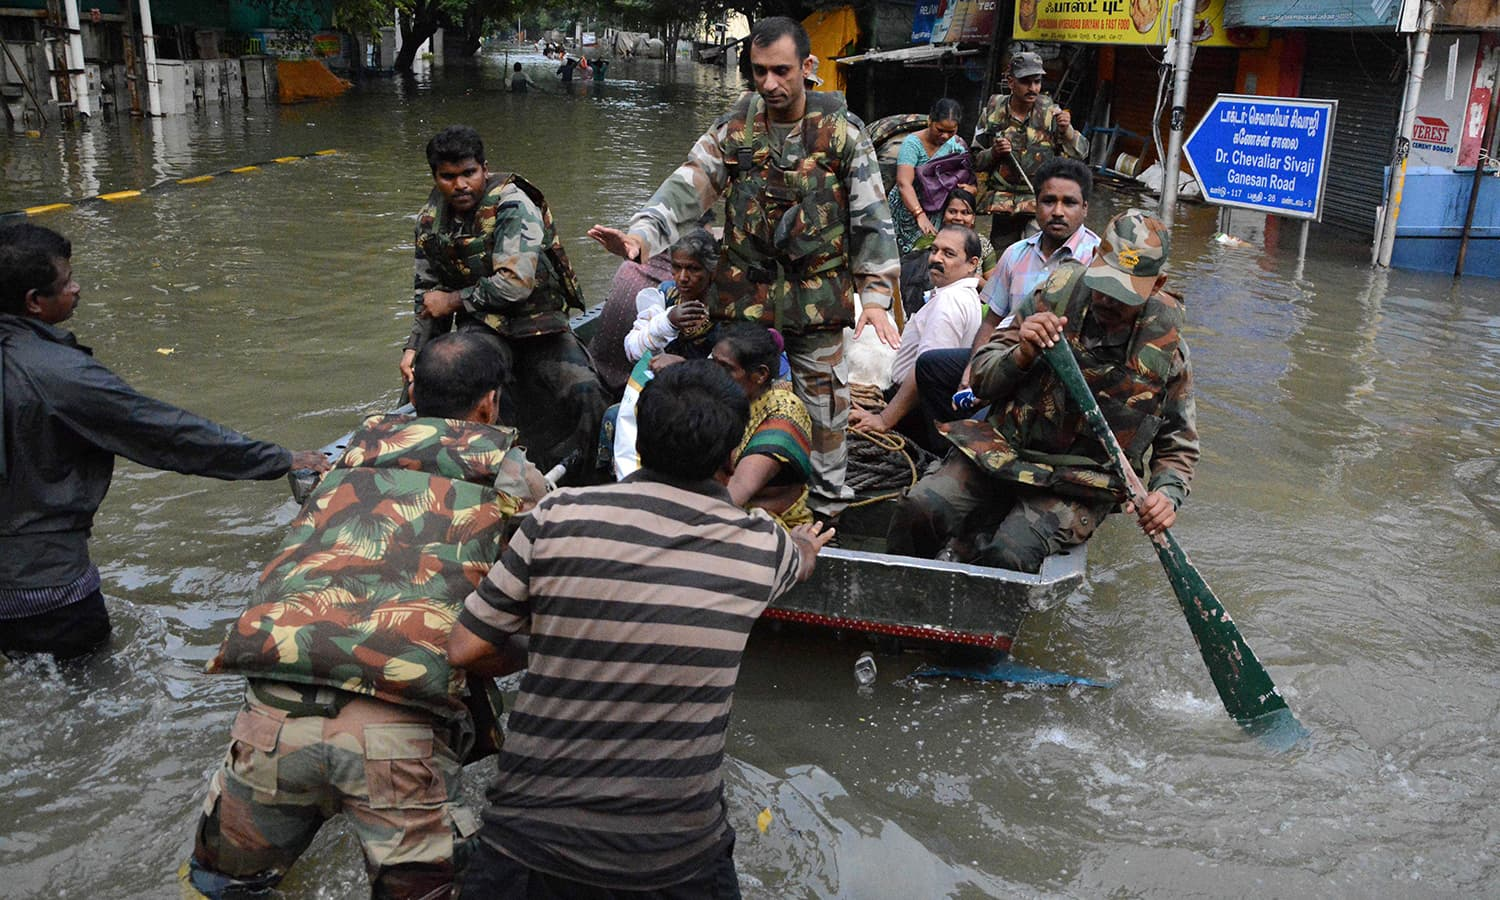 Indian army personnel use a boat to rescue residents from floodwaters in Chennai on December 3, 2015.  Thousands of rescuers raced to evacuate residents from deadly flooding, as India's Prime Minister Narendra Modi went to the southern state of Tamil Nadu to survey the devastation. — AFP